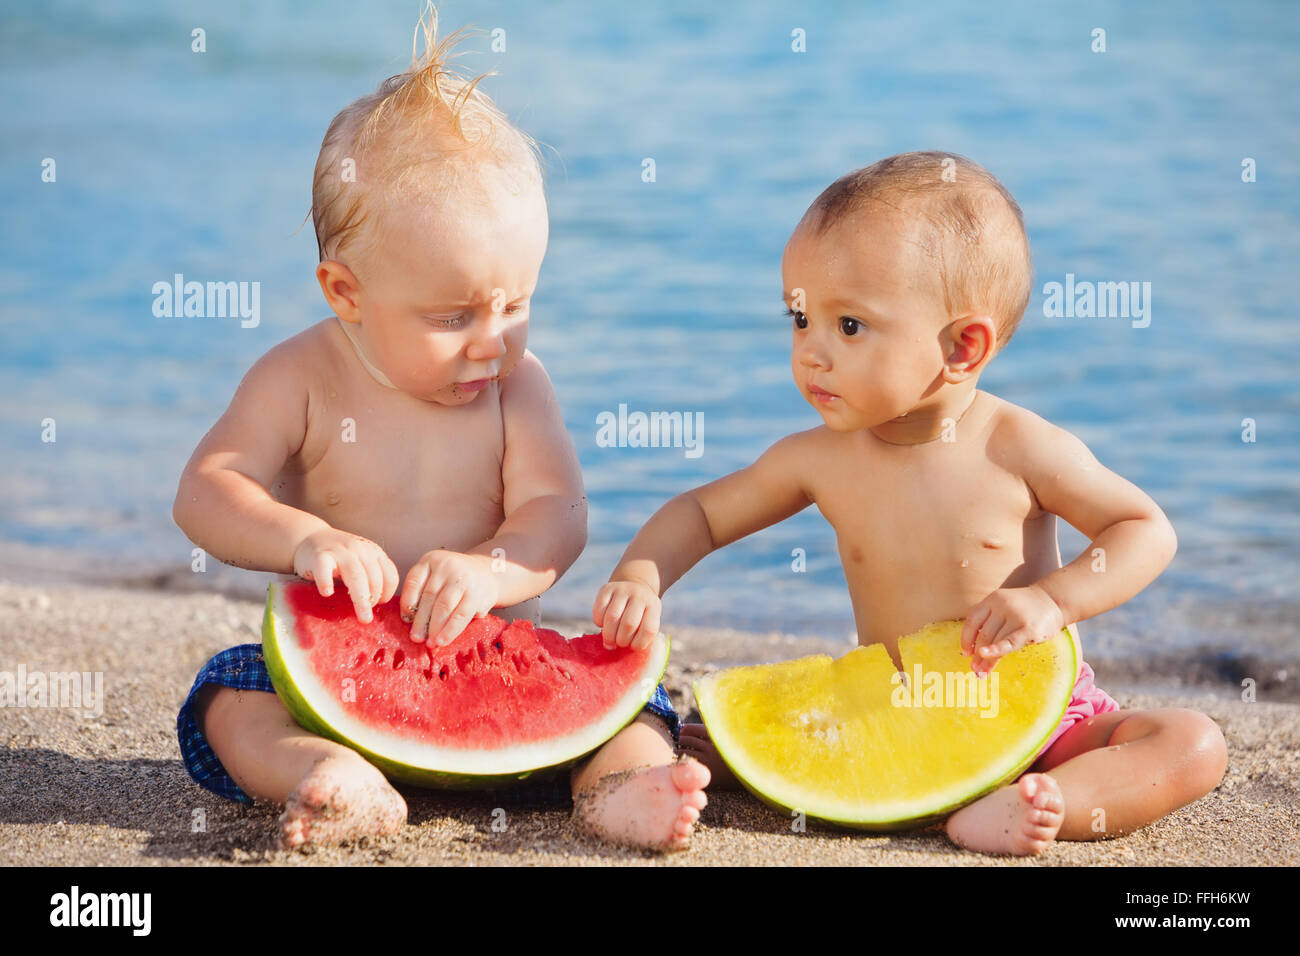 After sea swimming asian baby girl and white boy have a fun and eat fresh fruits on sand beach. - Stock Image